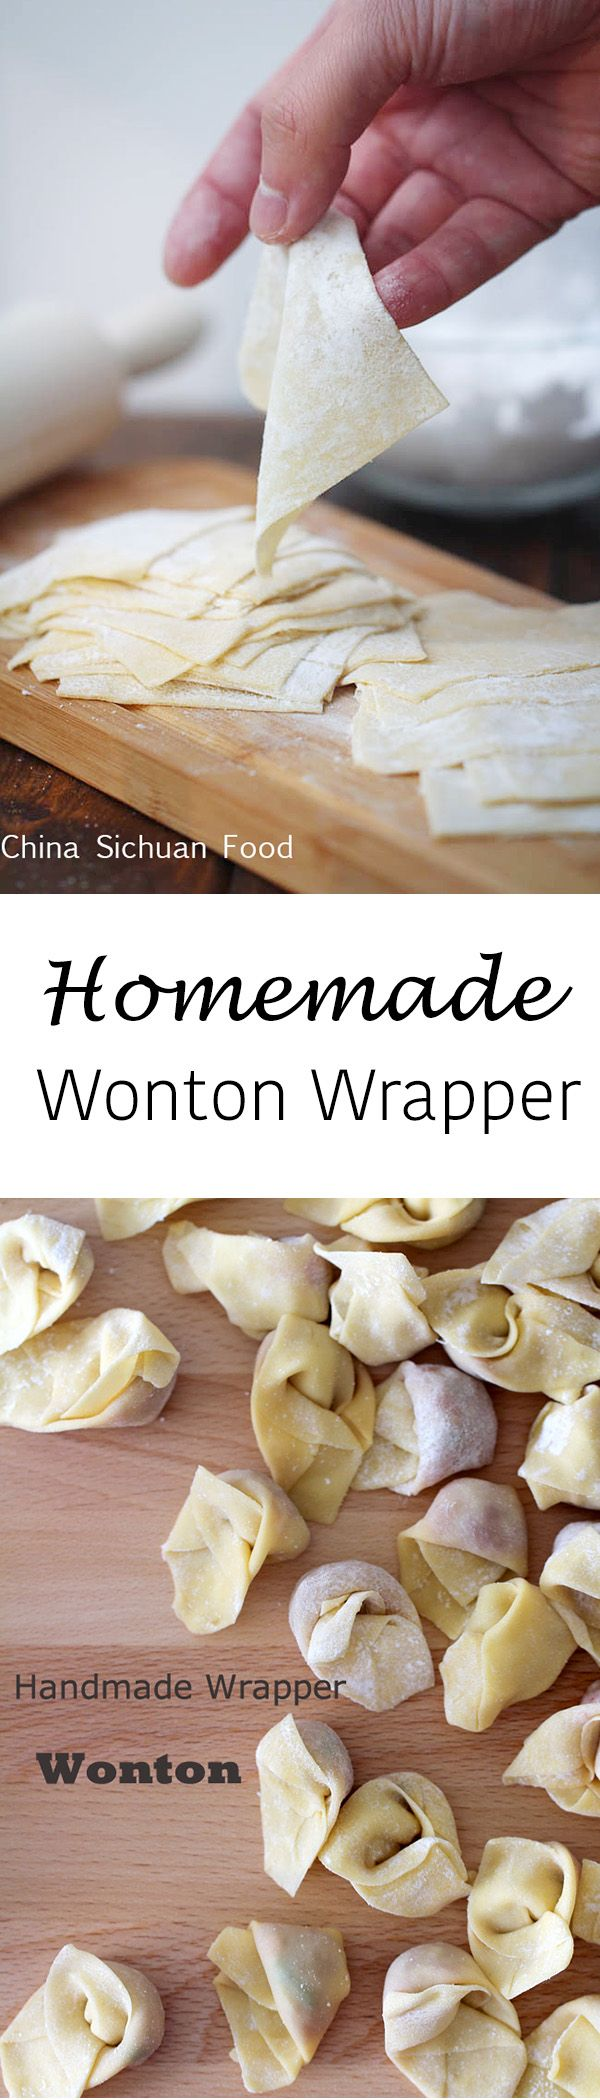 skip egg to make homemade vegan friendly #wonton wrappers